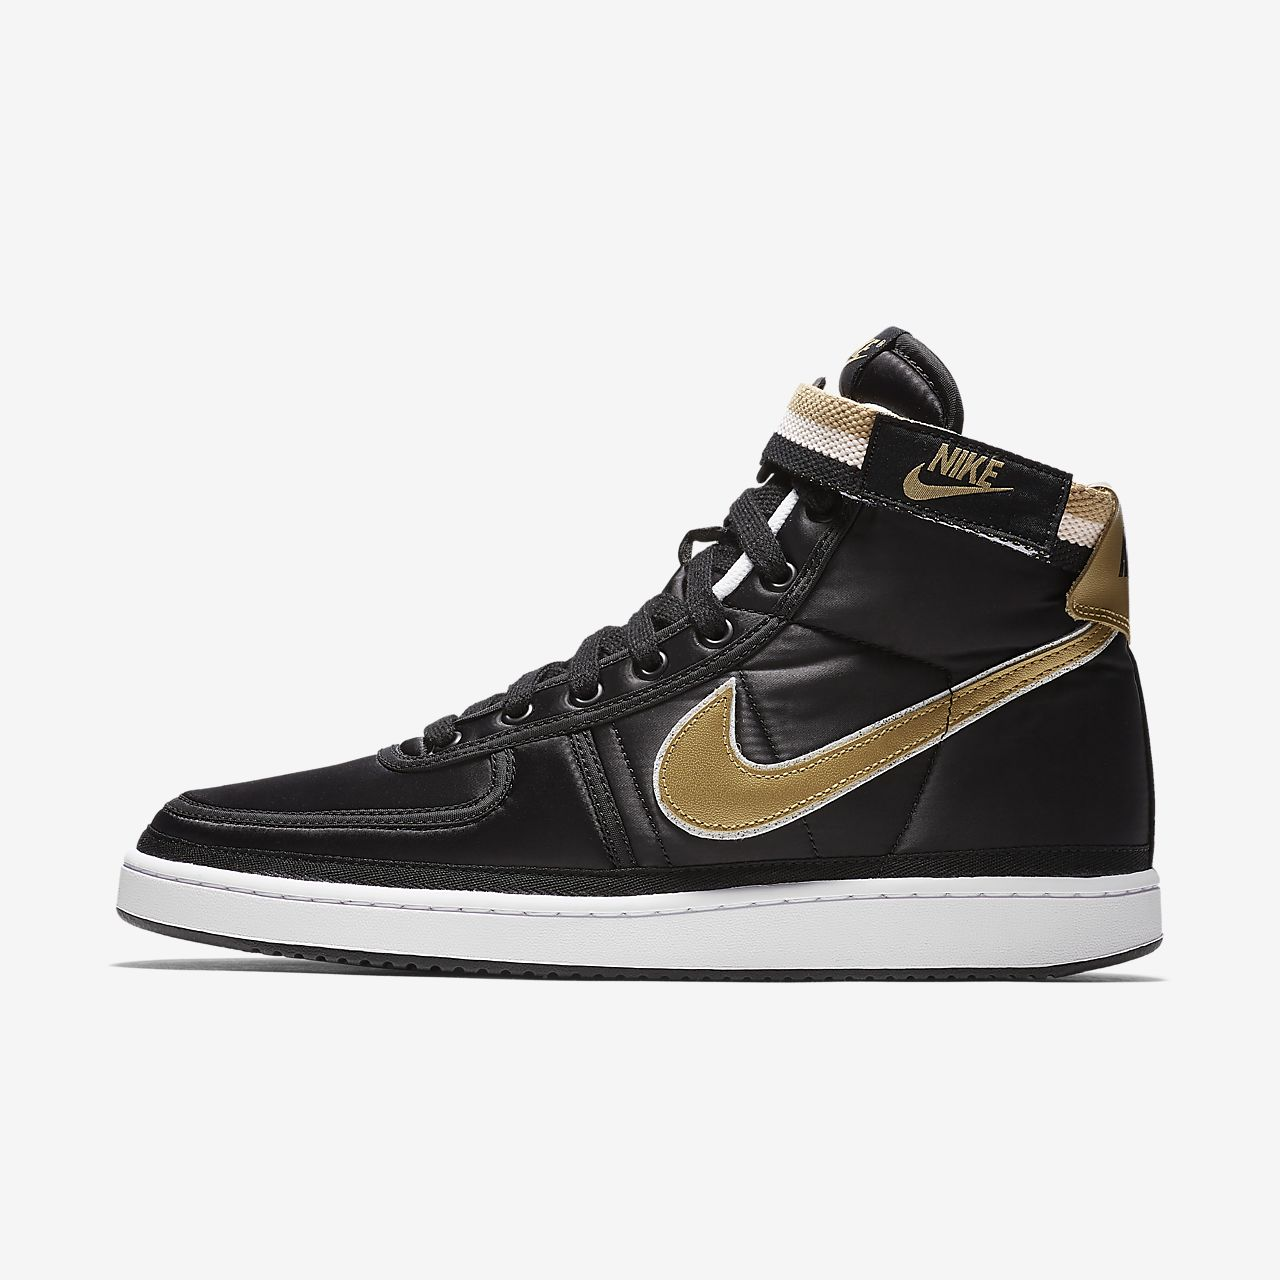 253b725dd3652 Nike Vandal High Supreme QS Men s Shoe. Nike.com